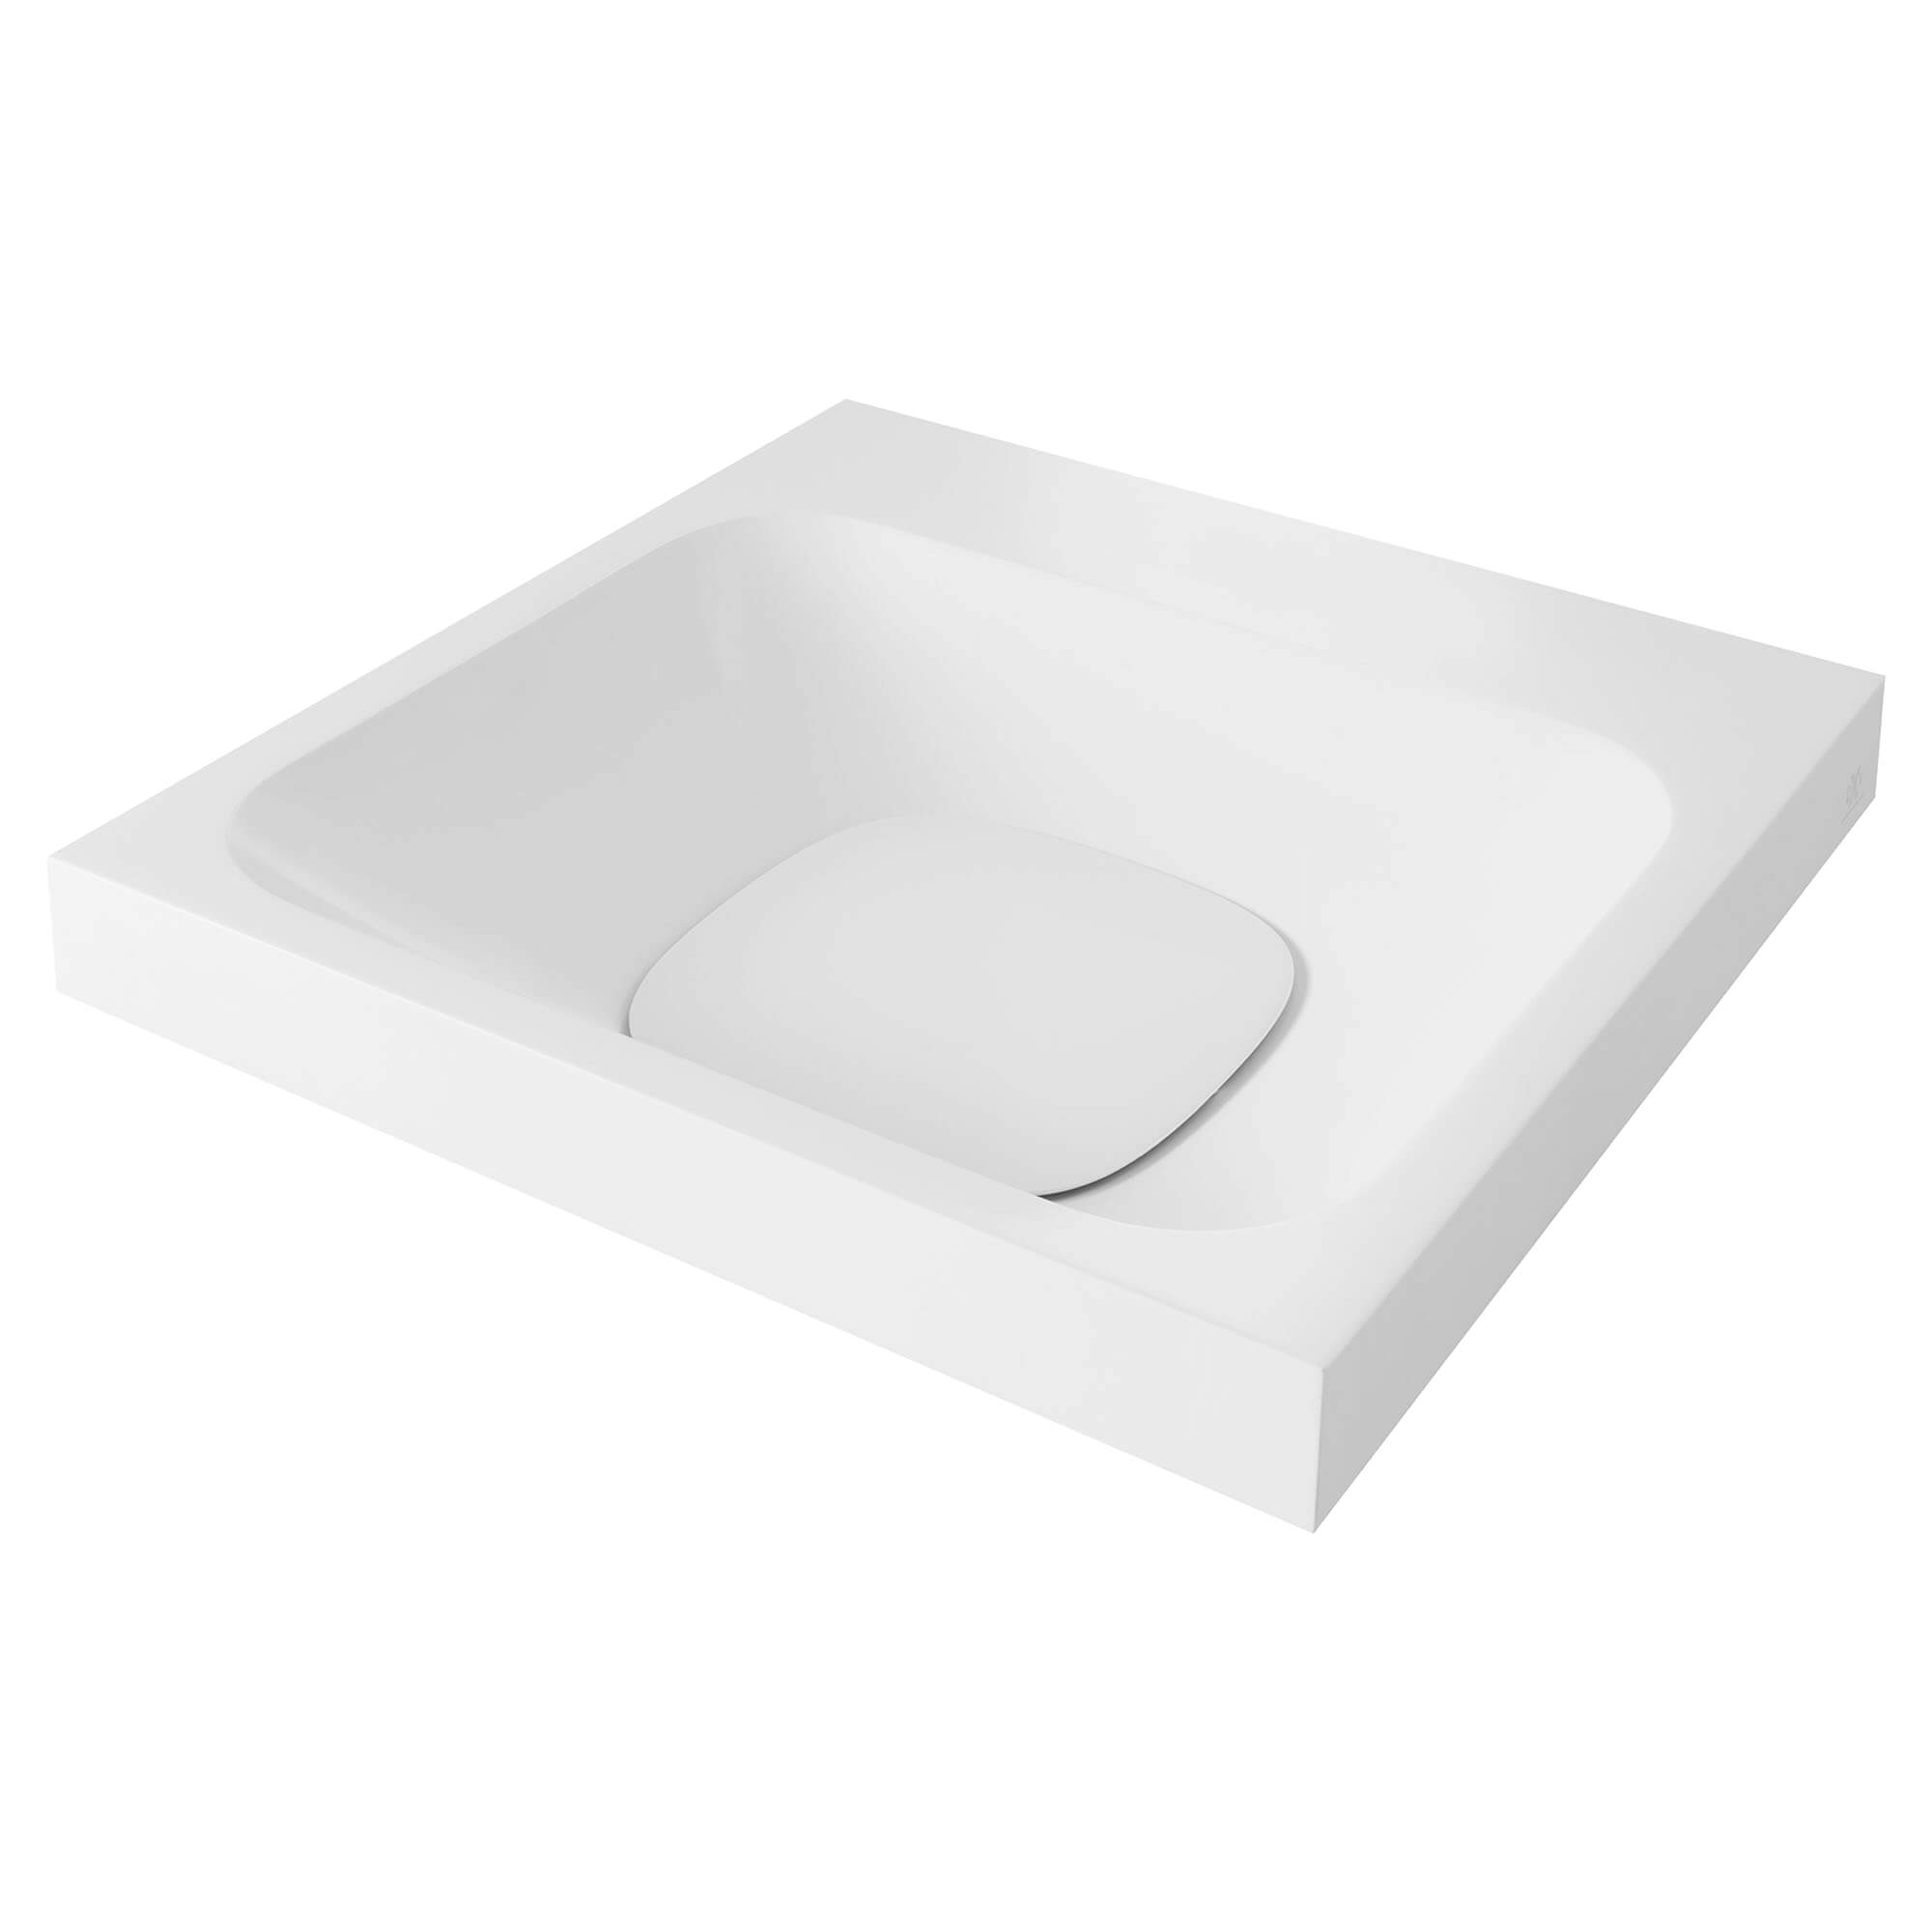 DXV Modulus 21-inch Bathroom Sink